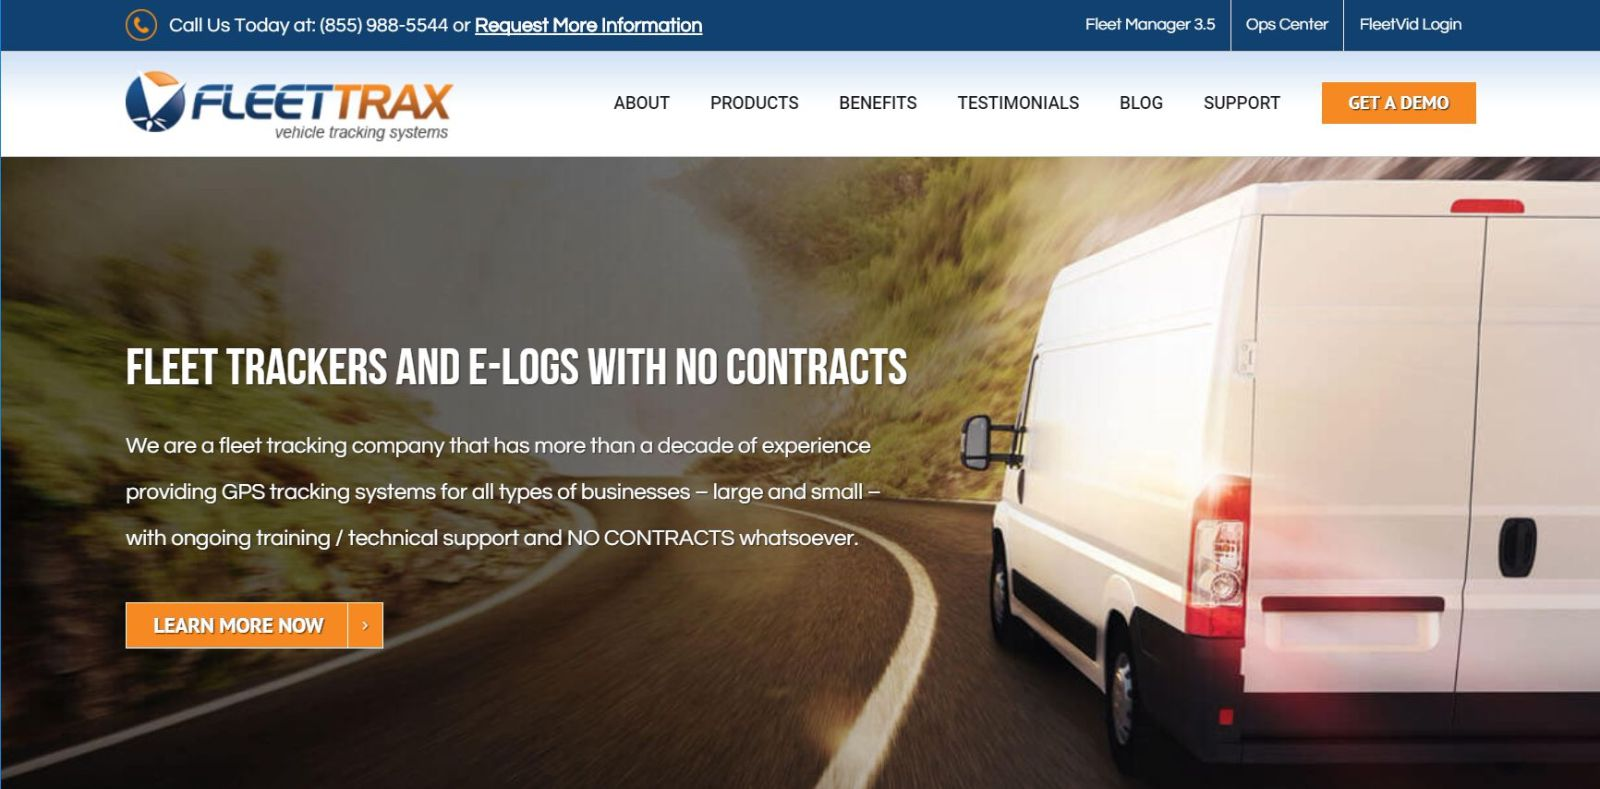 Fleet-Trax - 50+ Great Examples Of WordPress Avada in Action [year]